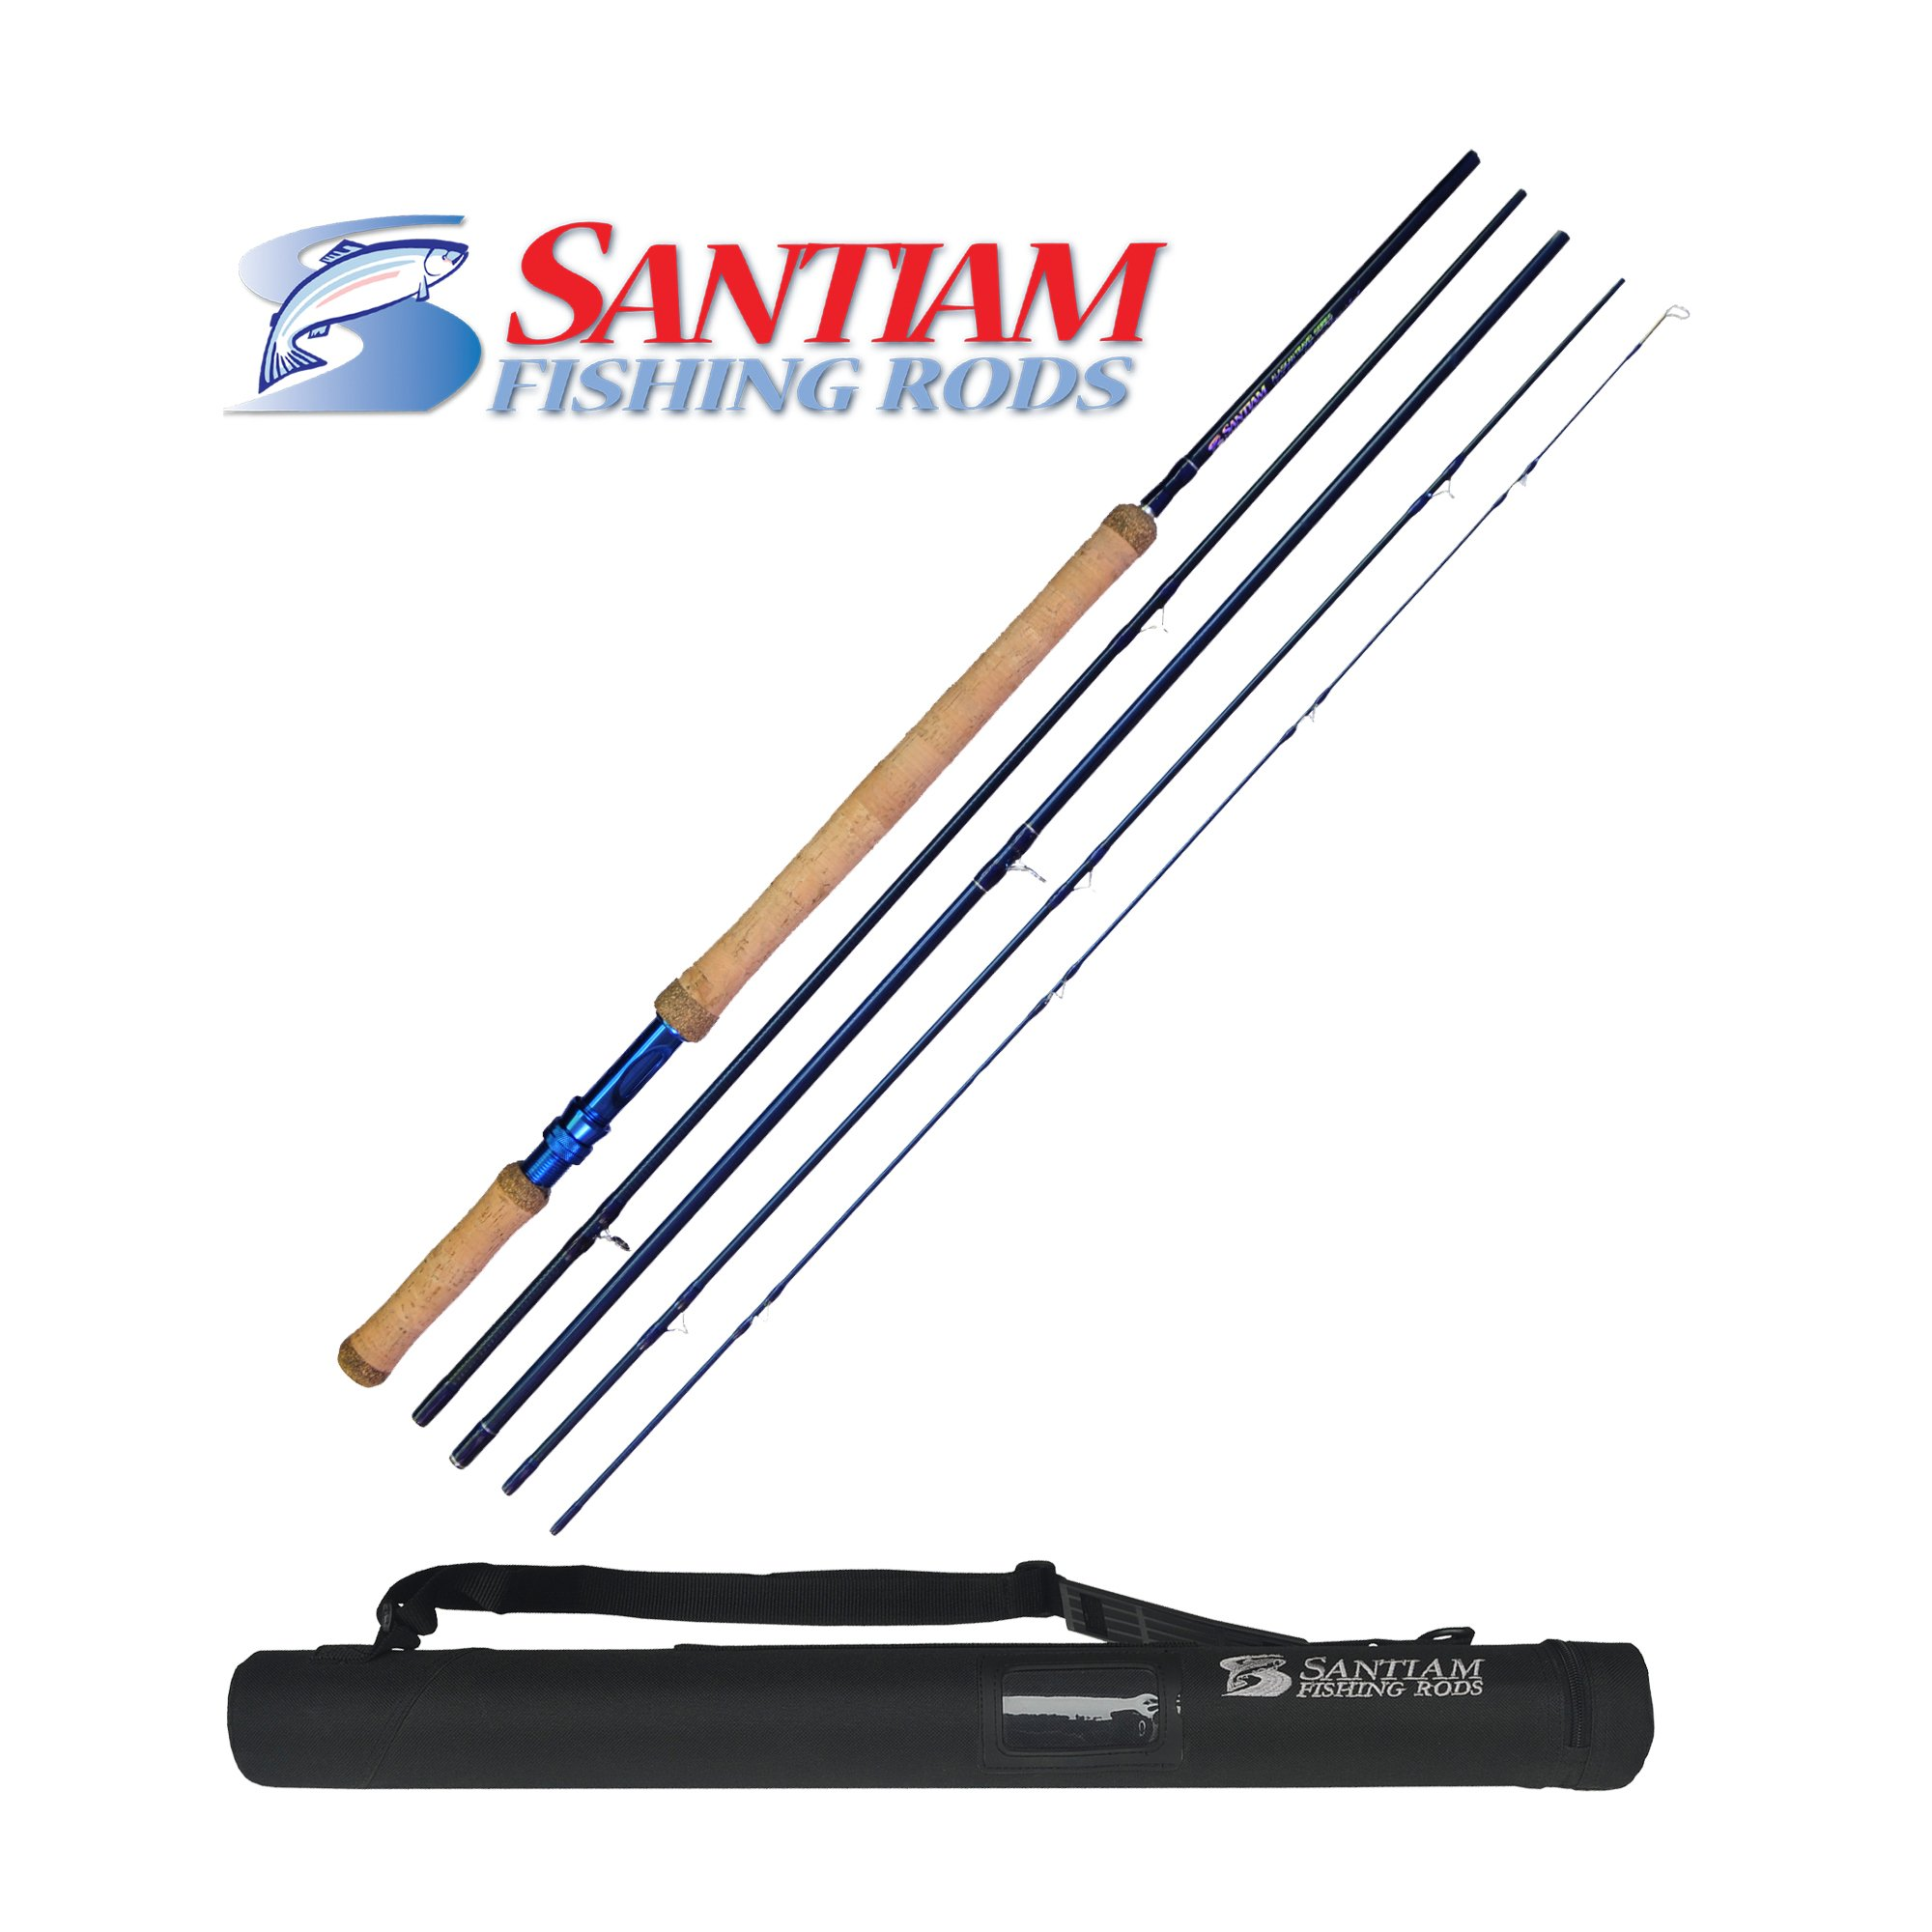 Santiam Fishing Rods 5-piece 11'2'' 8/9wt Travel Switch Rod w/Hard Case